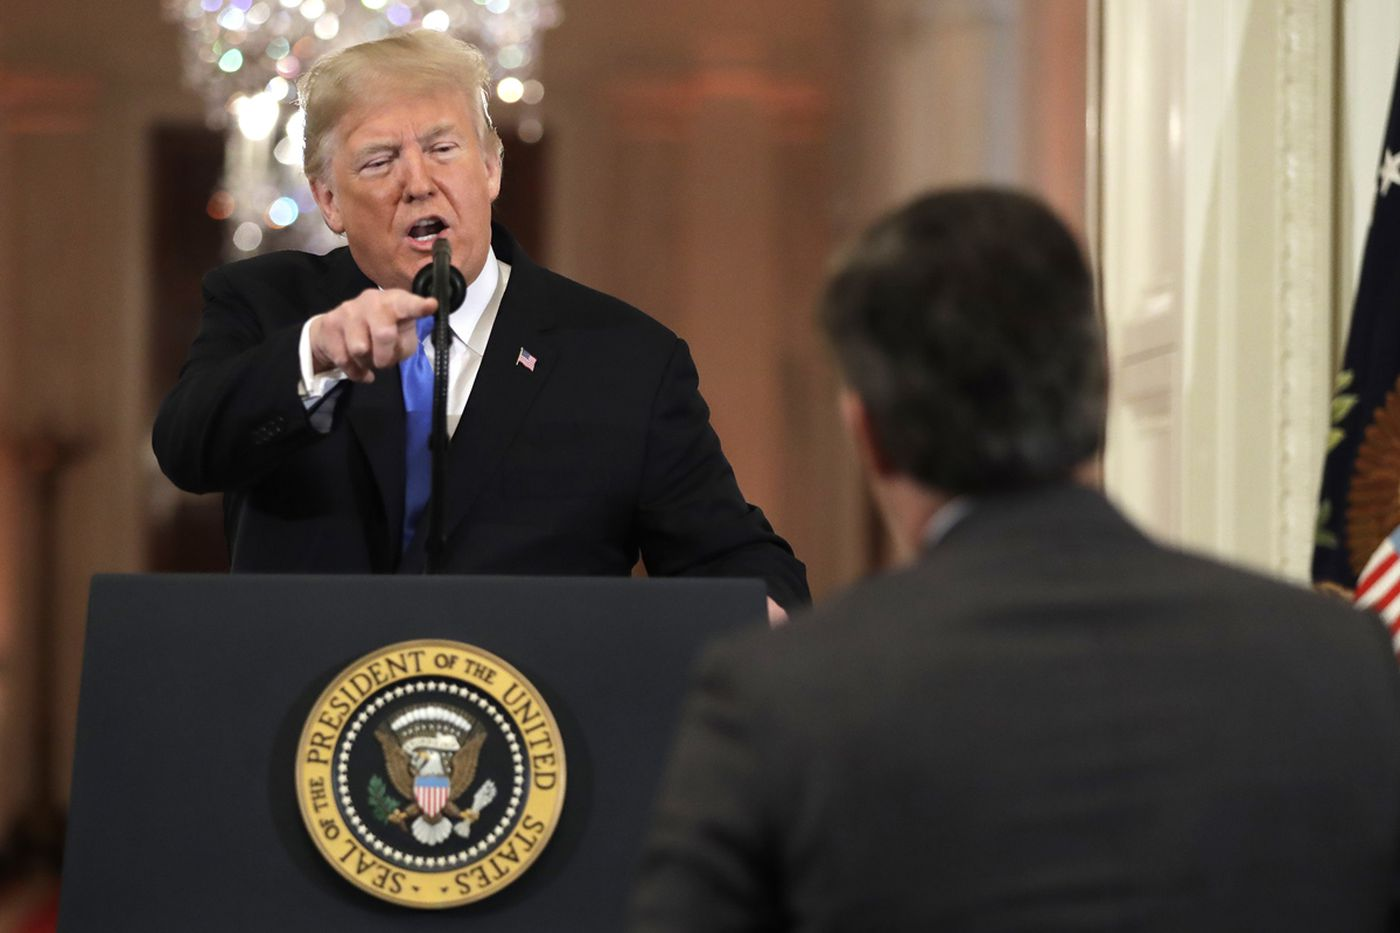 CNN journalist Jim Acosta's White House access revoked after spat with Trump